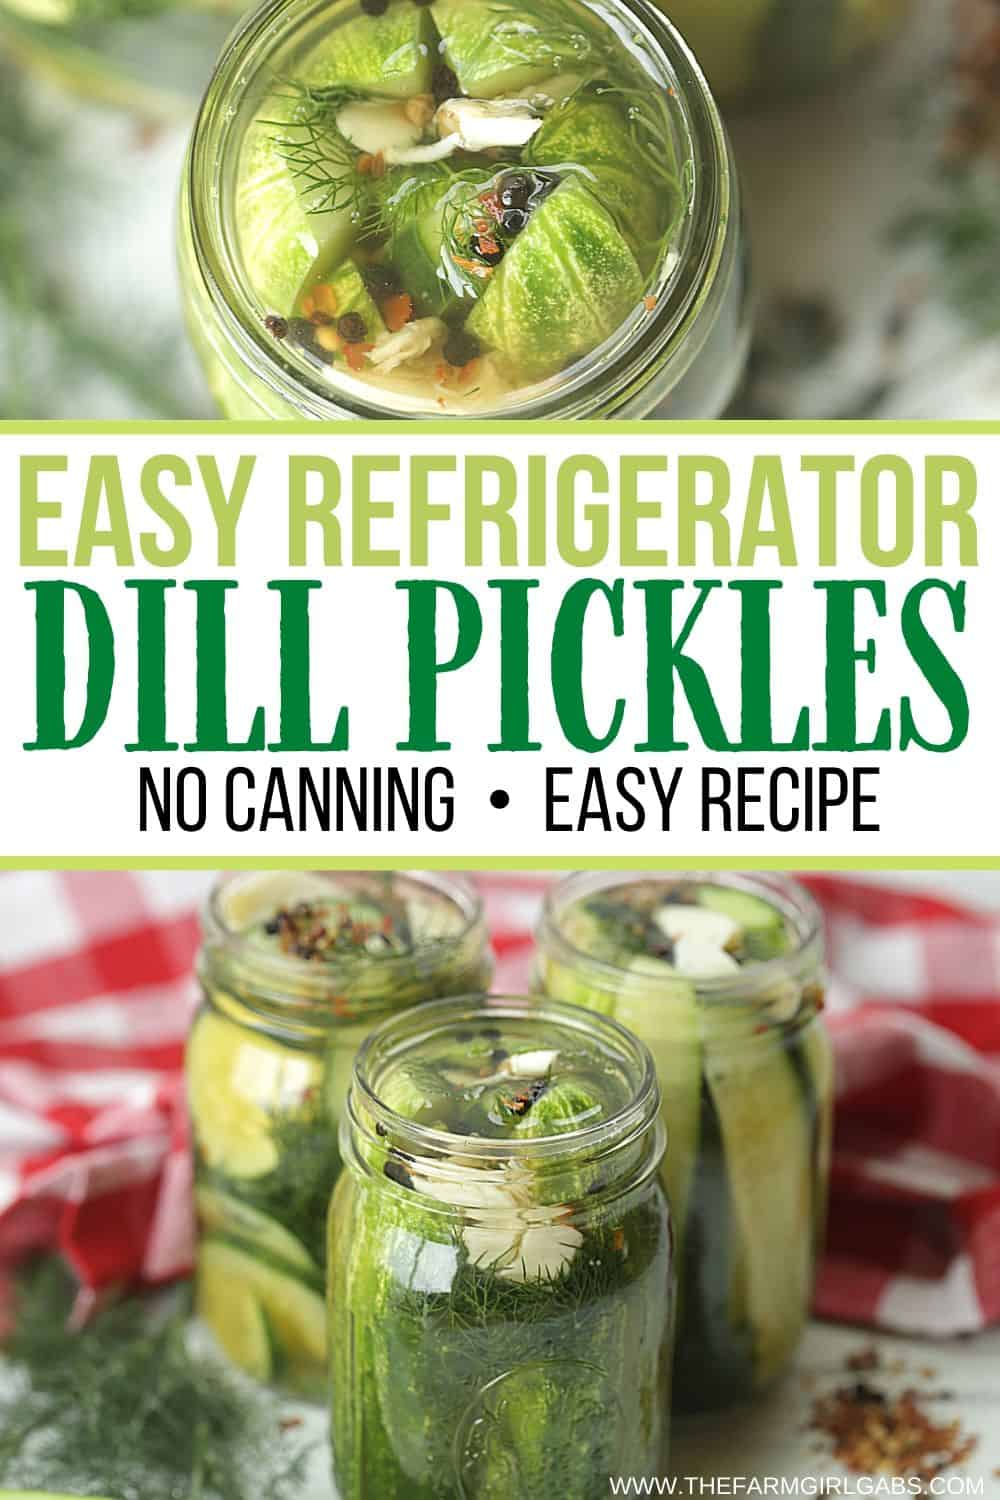 This Easy Homemade Refrigerator Dill Pickles recipe packs a lot of crunch and zesty flavor. There is no canning involved in this easy refrigerator pickle recipe. This recipe is a great way to use those cucumbers you just picked from your garden or bought at your farmers' market. These refrigerator pickles are cucumbers that are pickled in a homemade brine with garlic, dill and spices.